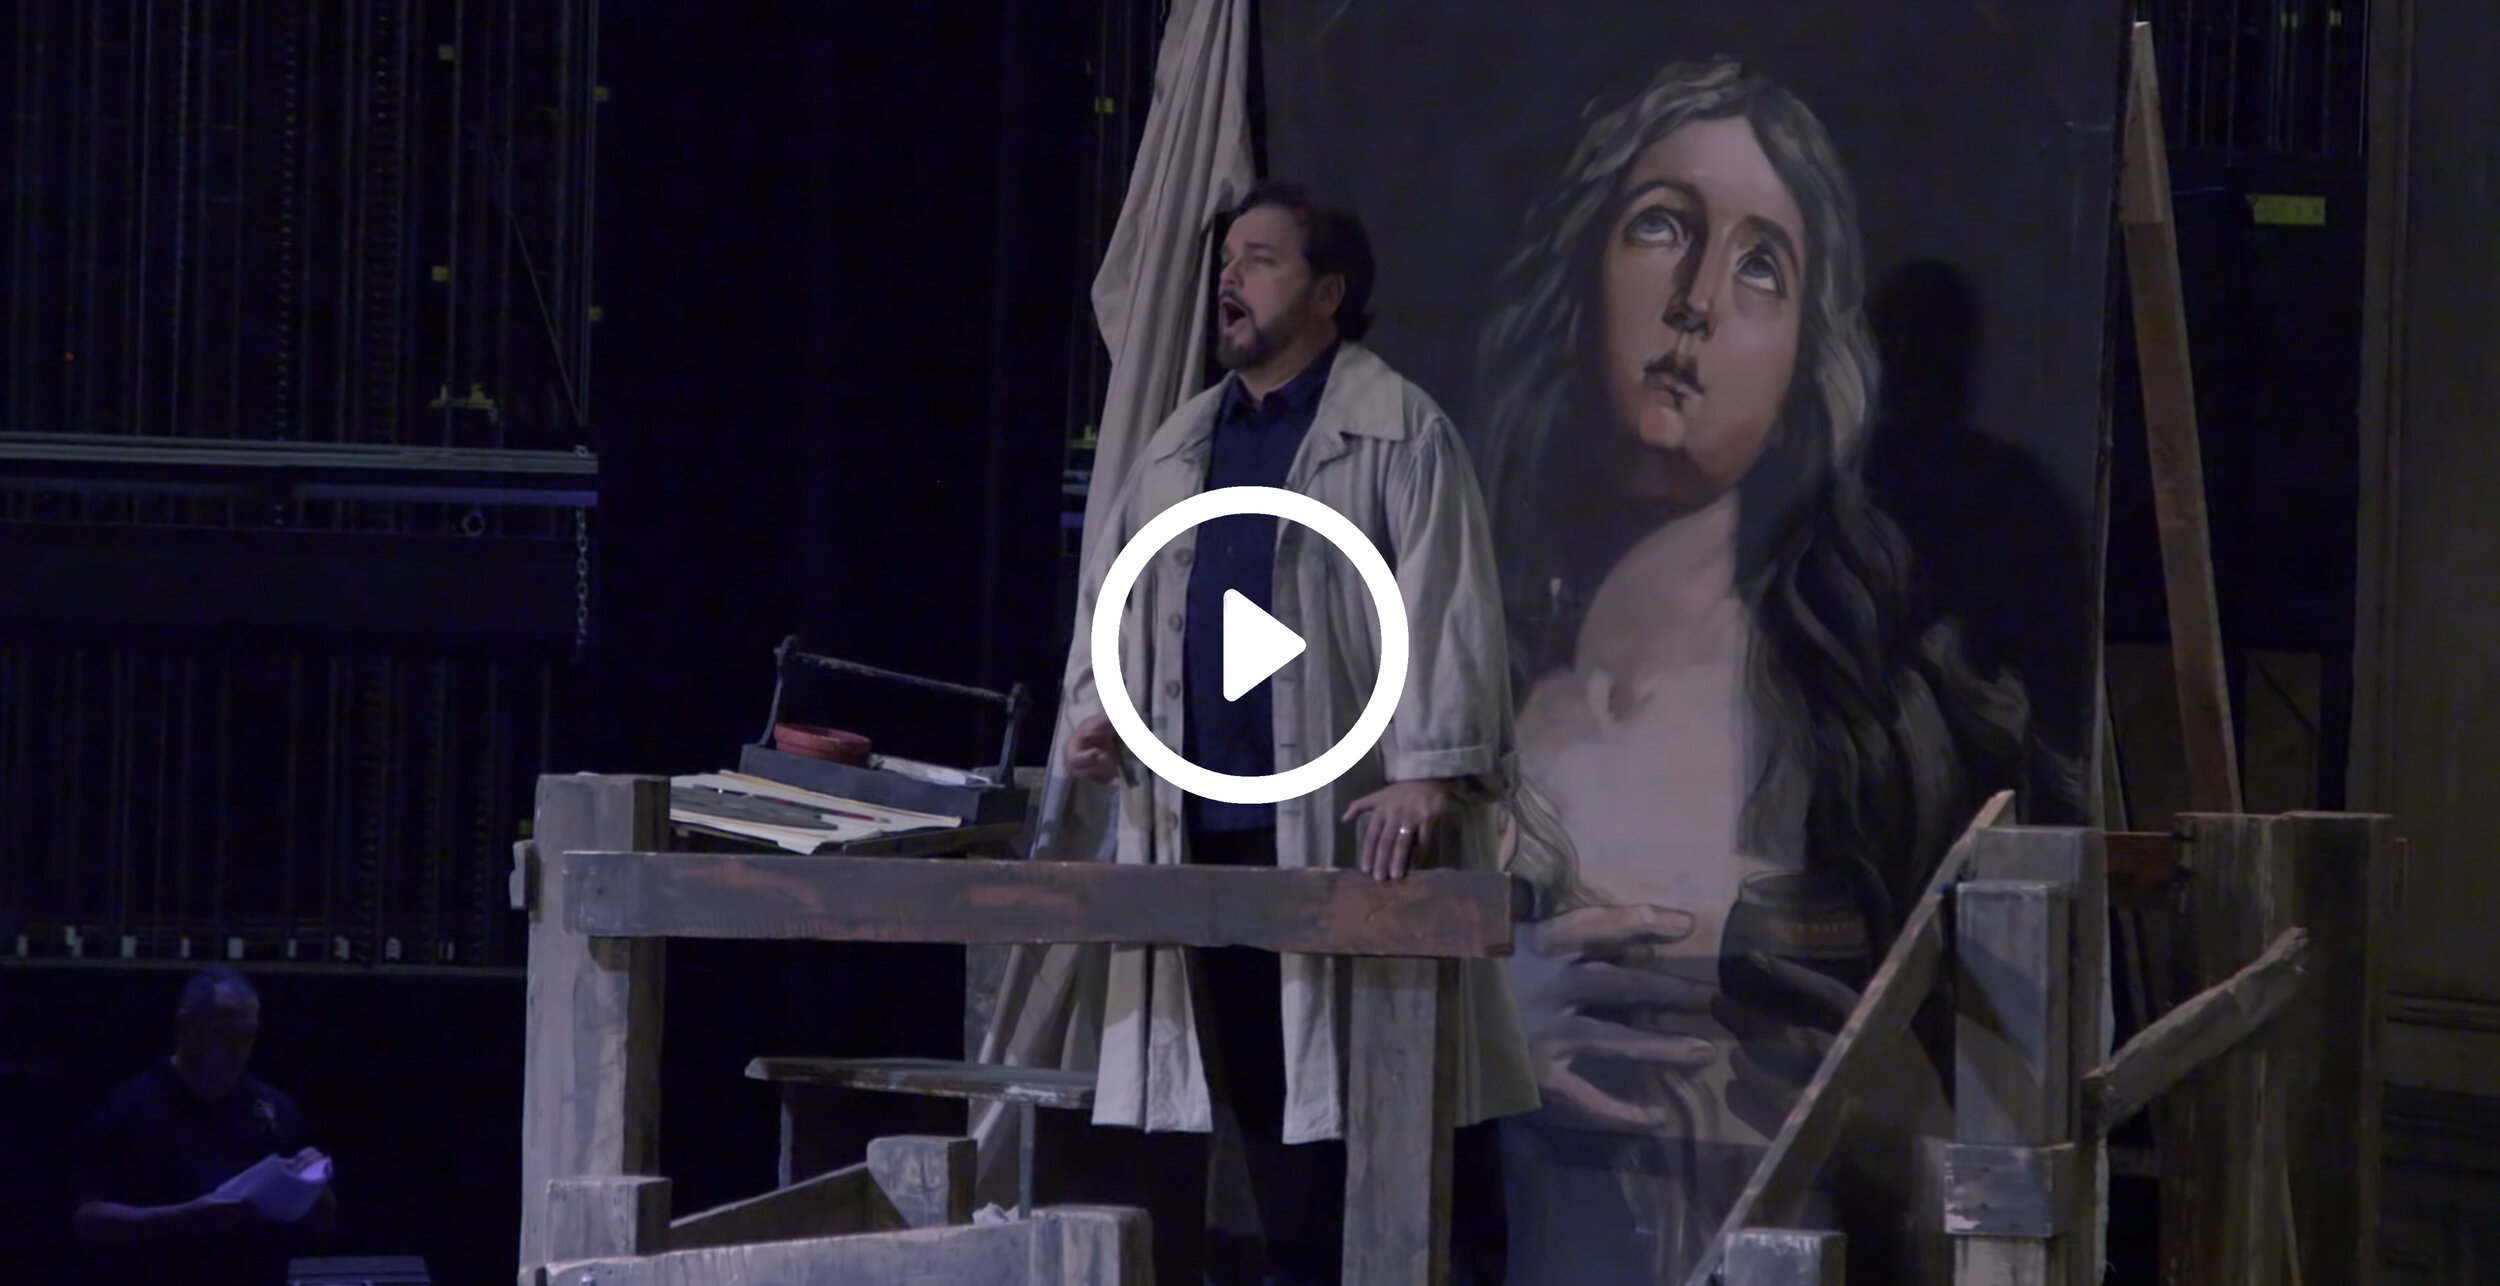 Taste of Tosca - Take a behind the scenes look at our production of Tosca